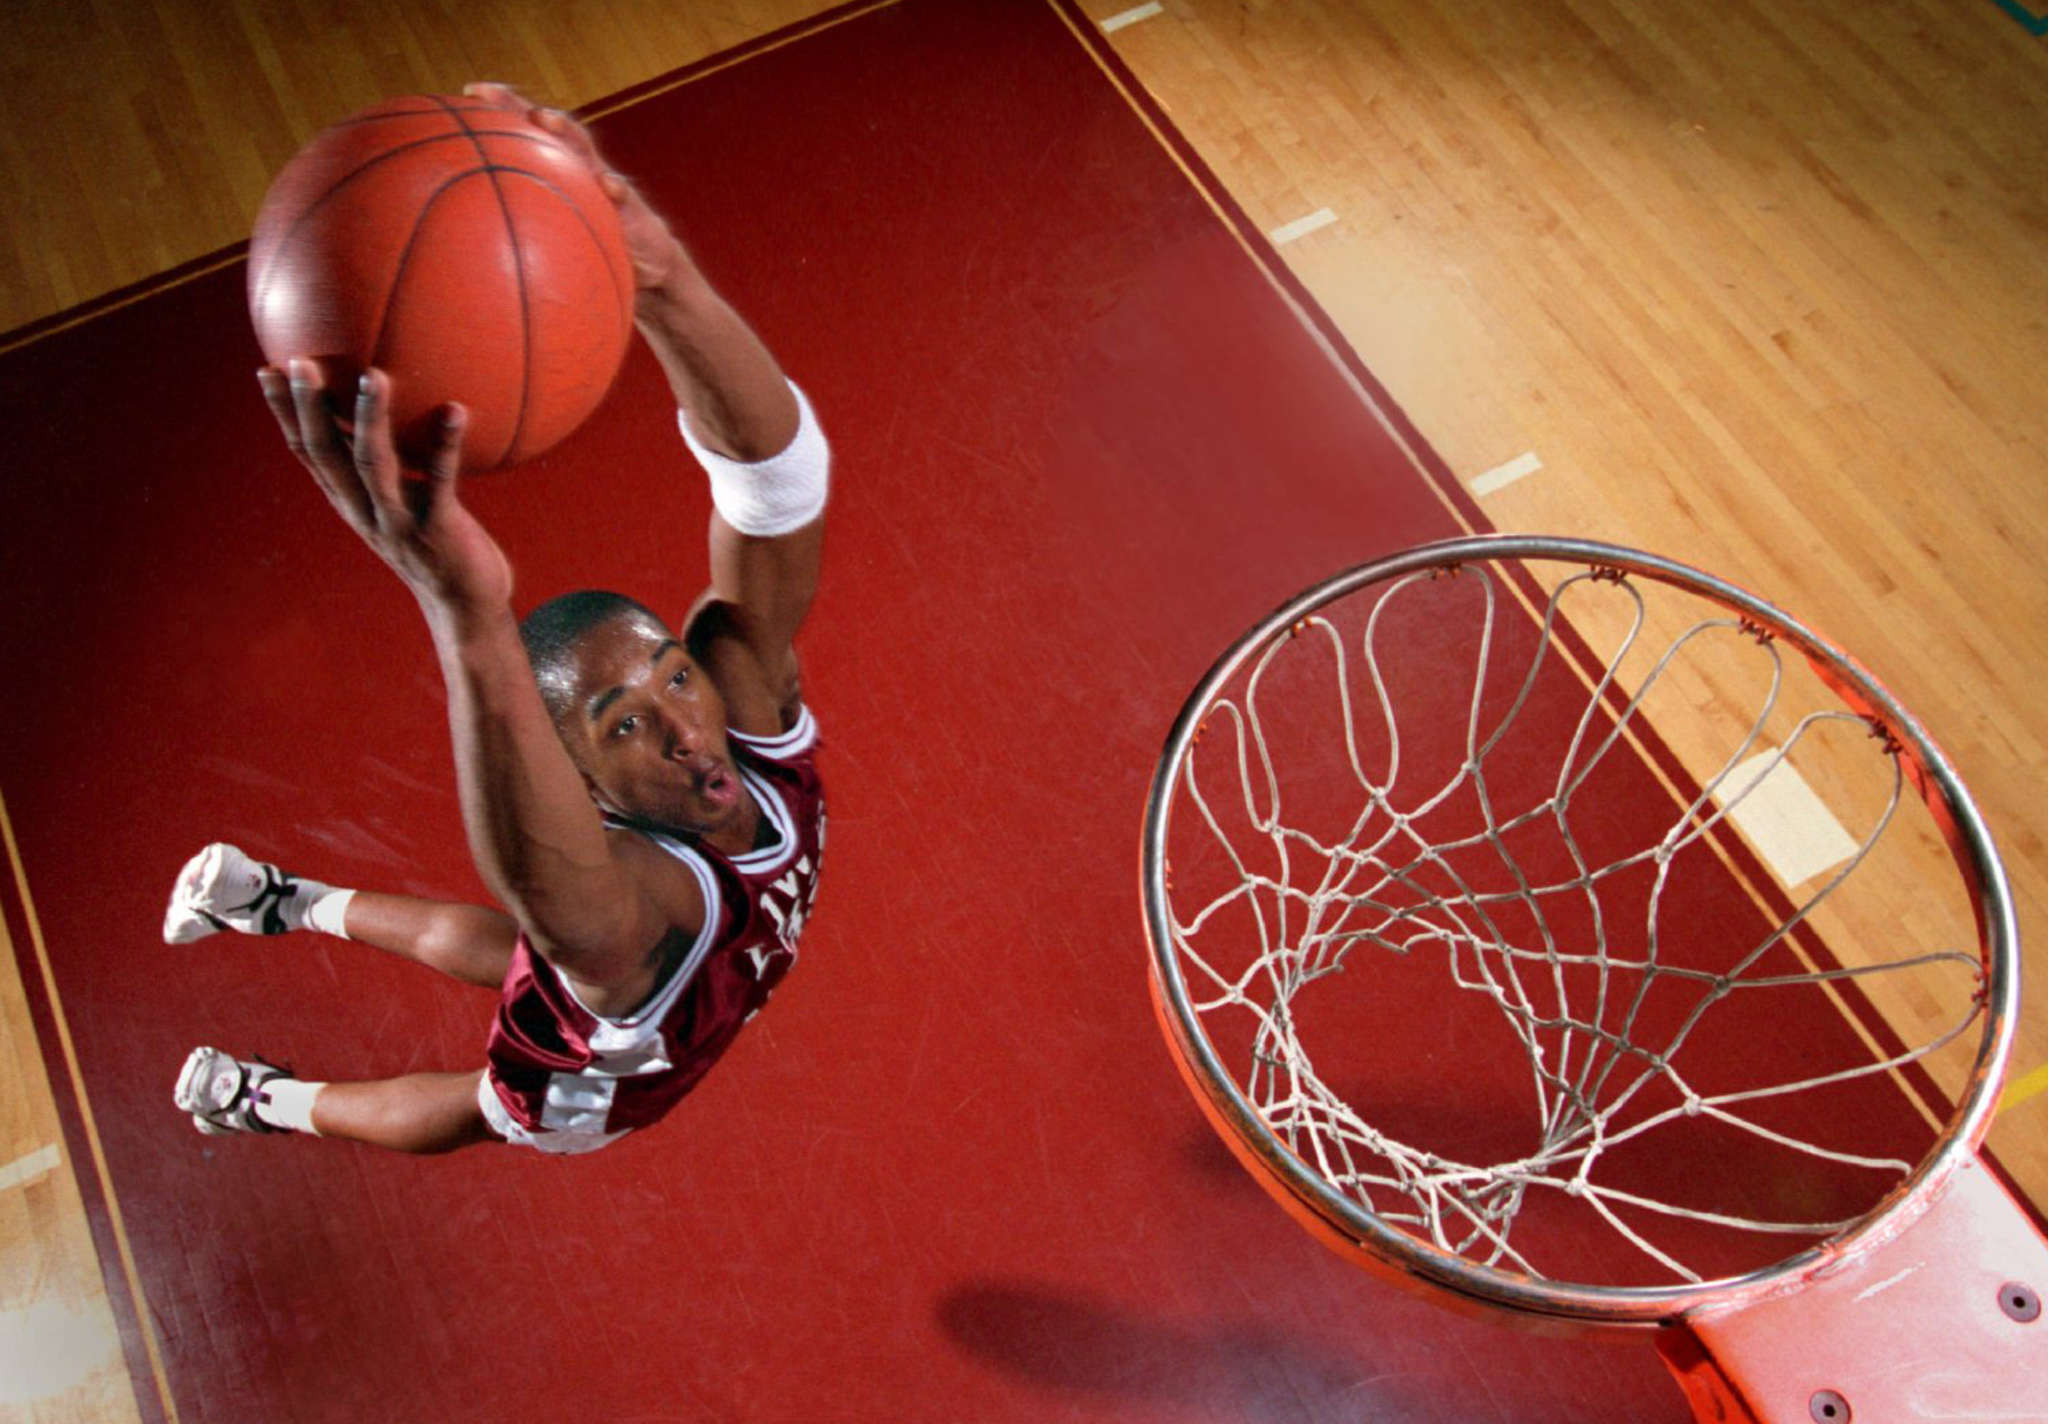 Kobe Bryant led Lower Merion to the PIAA Class AAAA championship in his senior season in 1996. Stories about his high school days abound, including a trash-talking incident that resulted in Bryant´s blocking the offender´s shot and launching the ball 40 feet into a jungle gym.